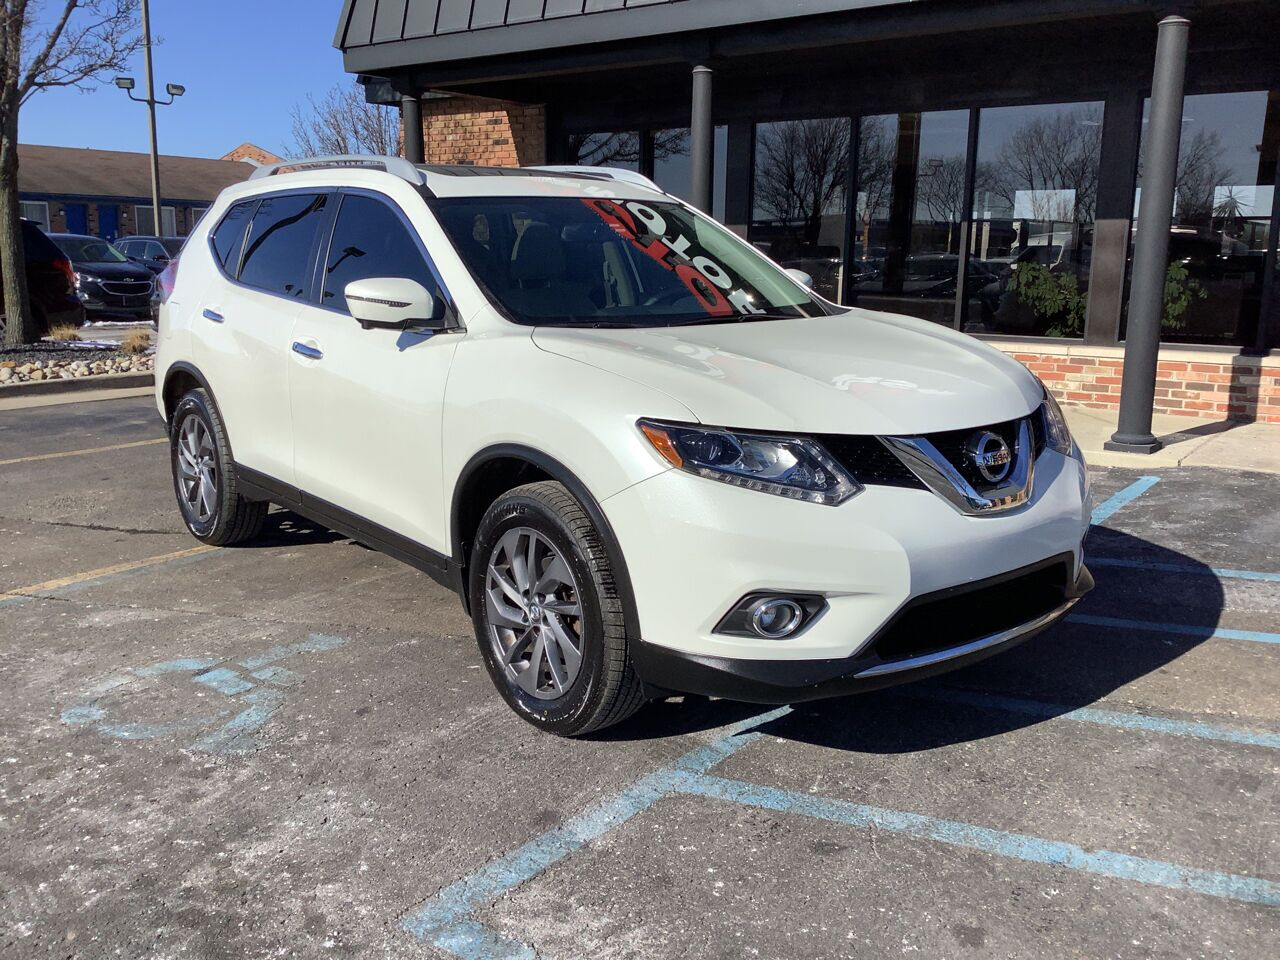 2016 Nissan Rogue SL AWD 4dr Crossover Chesterfield MI